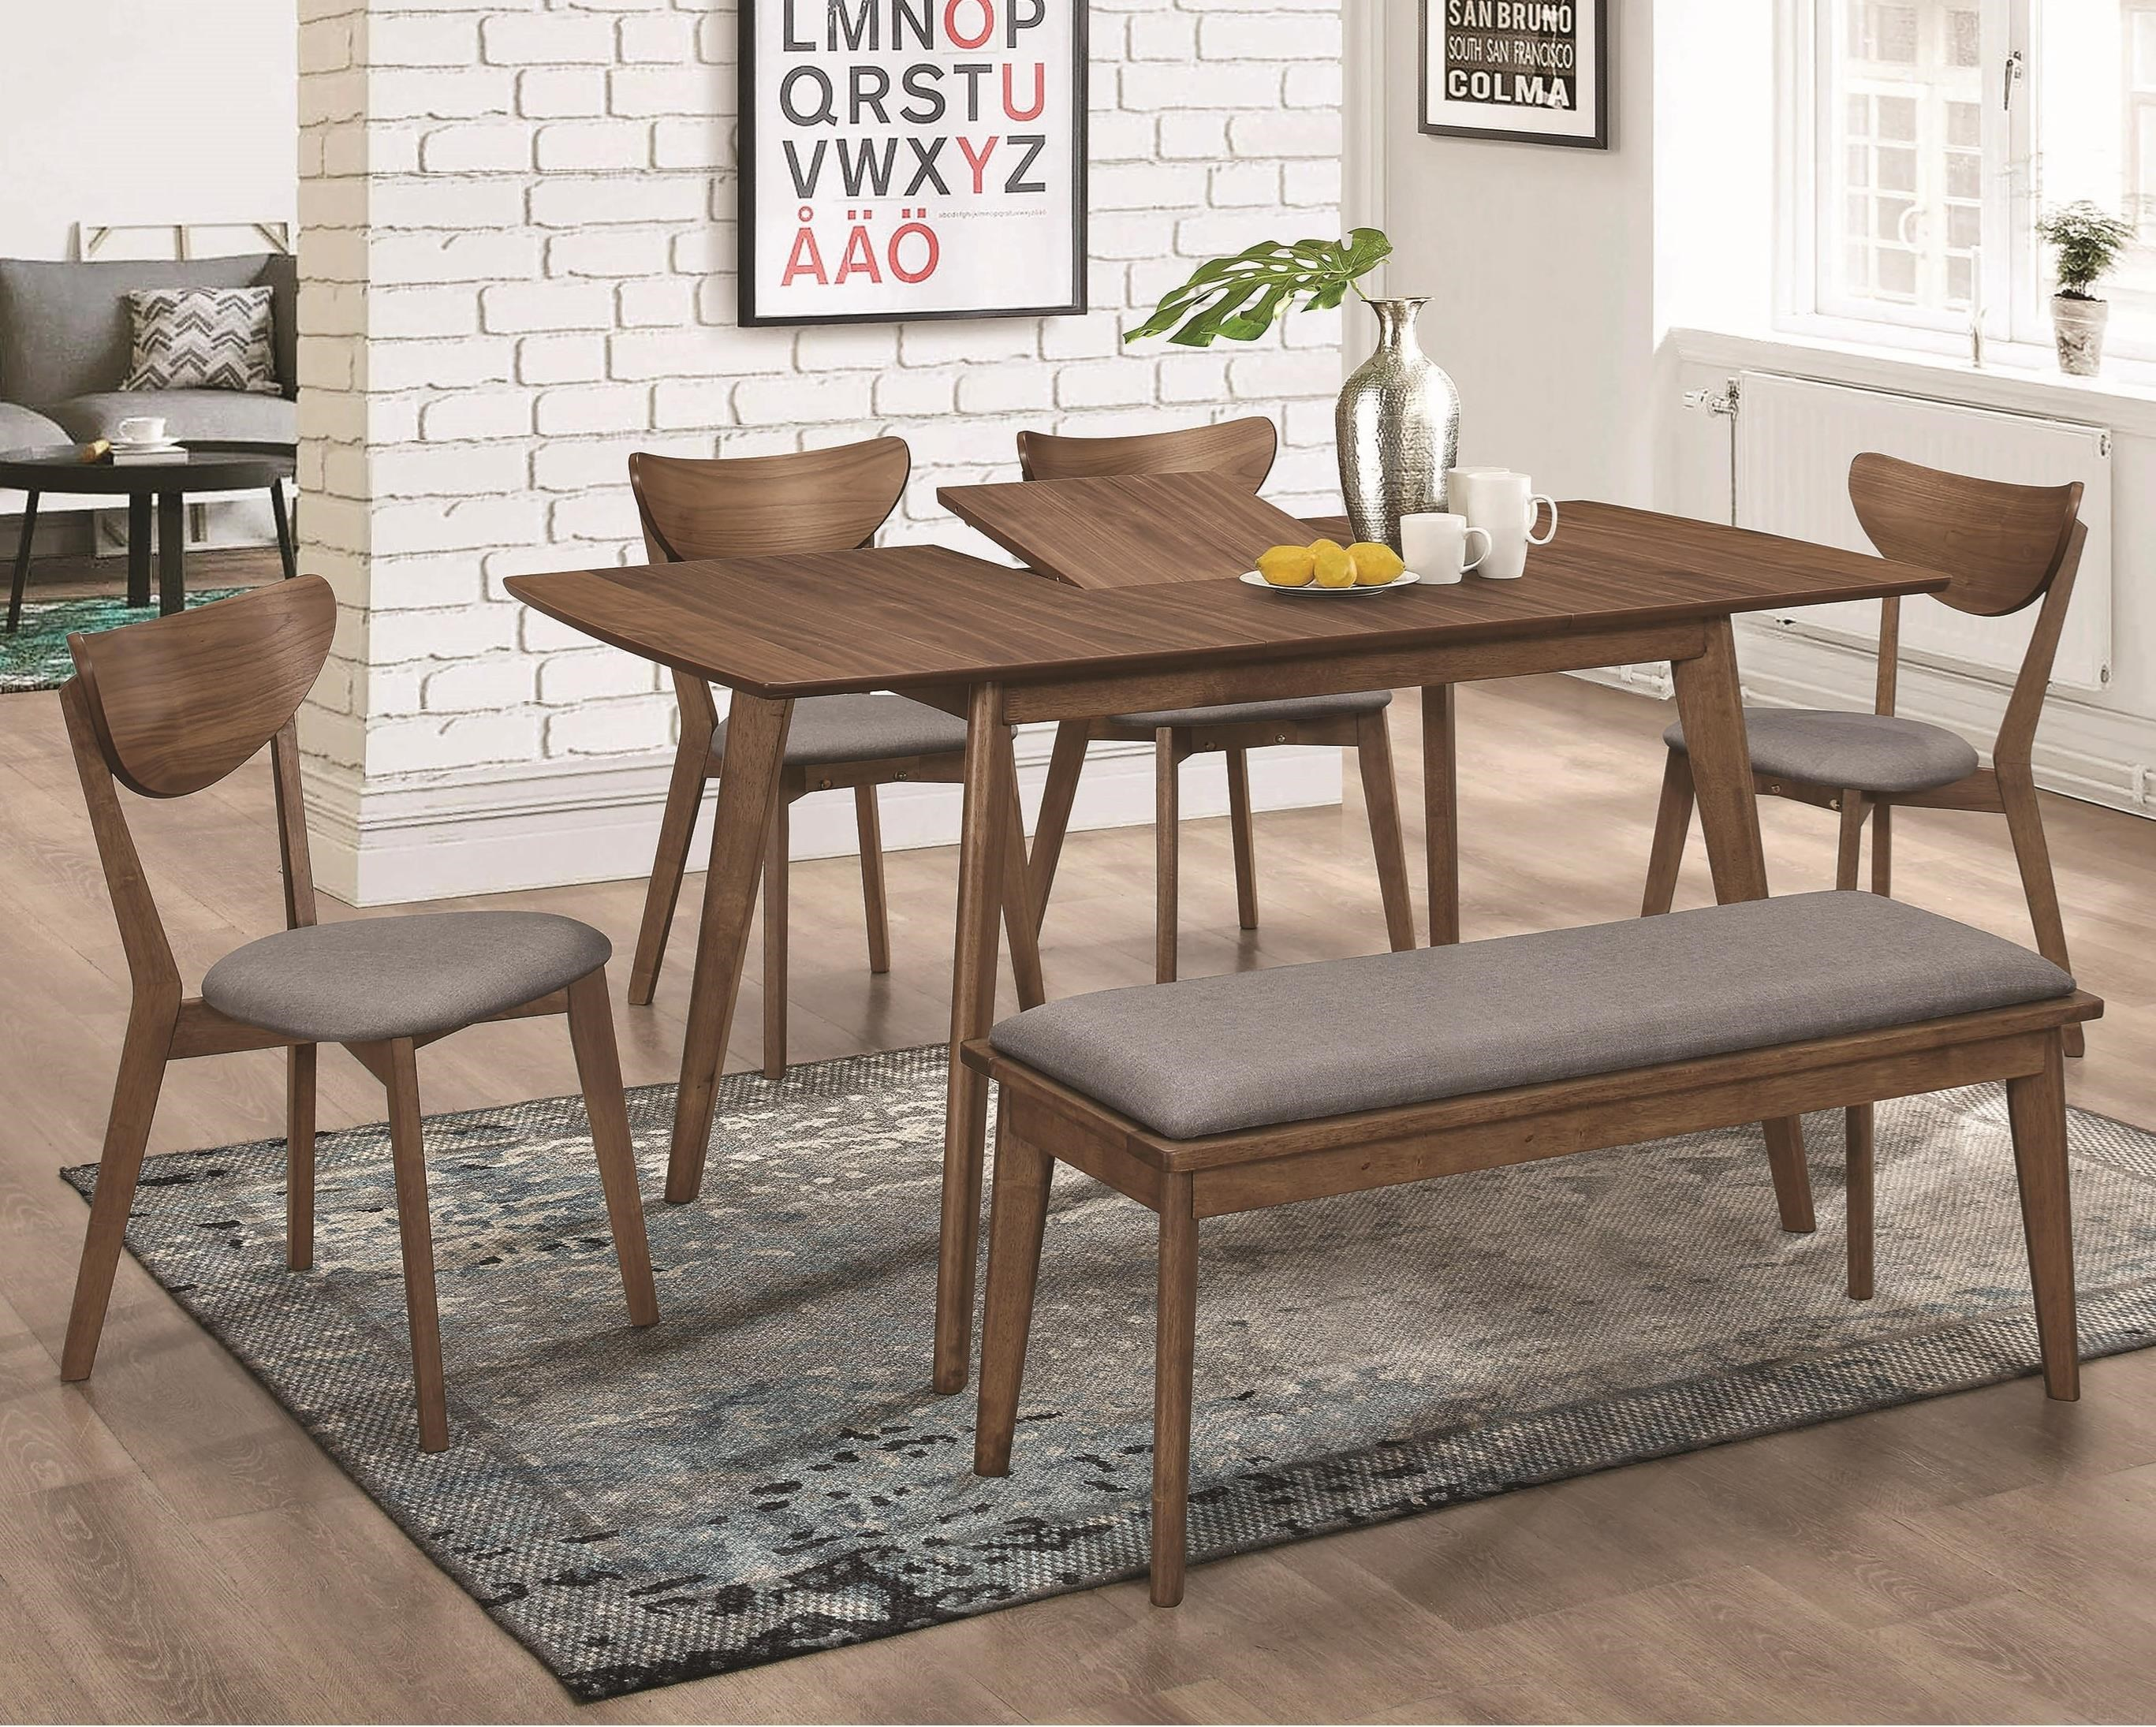 Mid-Century Modern Table and Chair Set with Bench